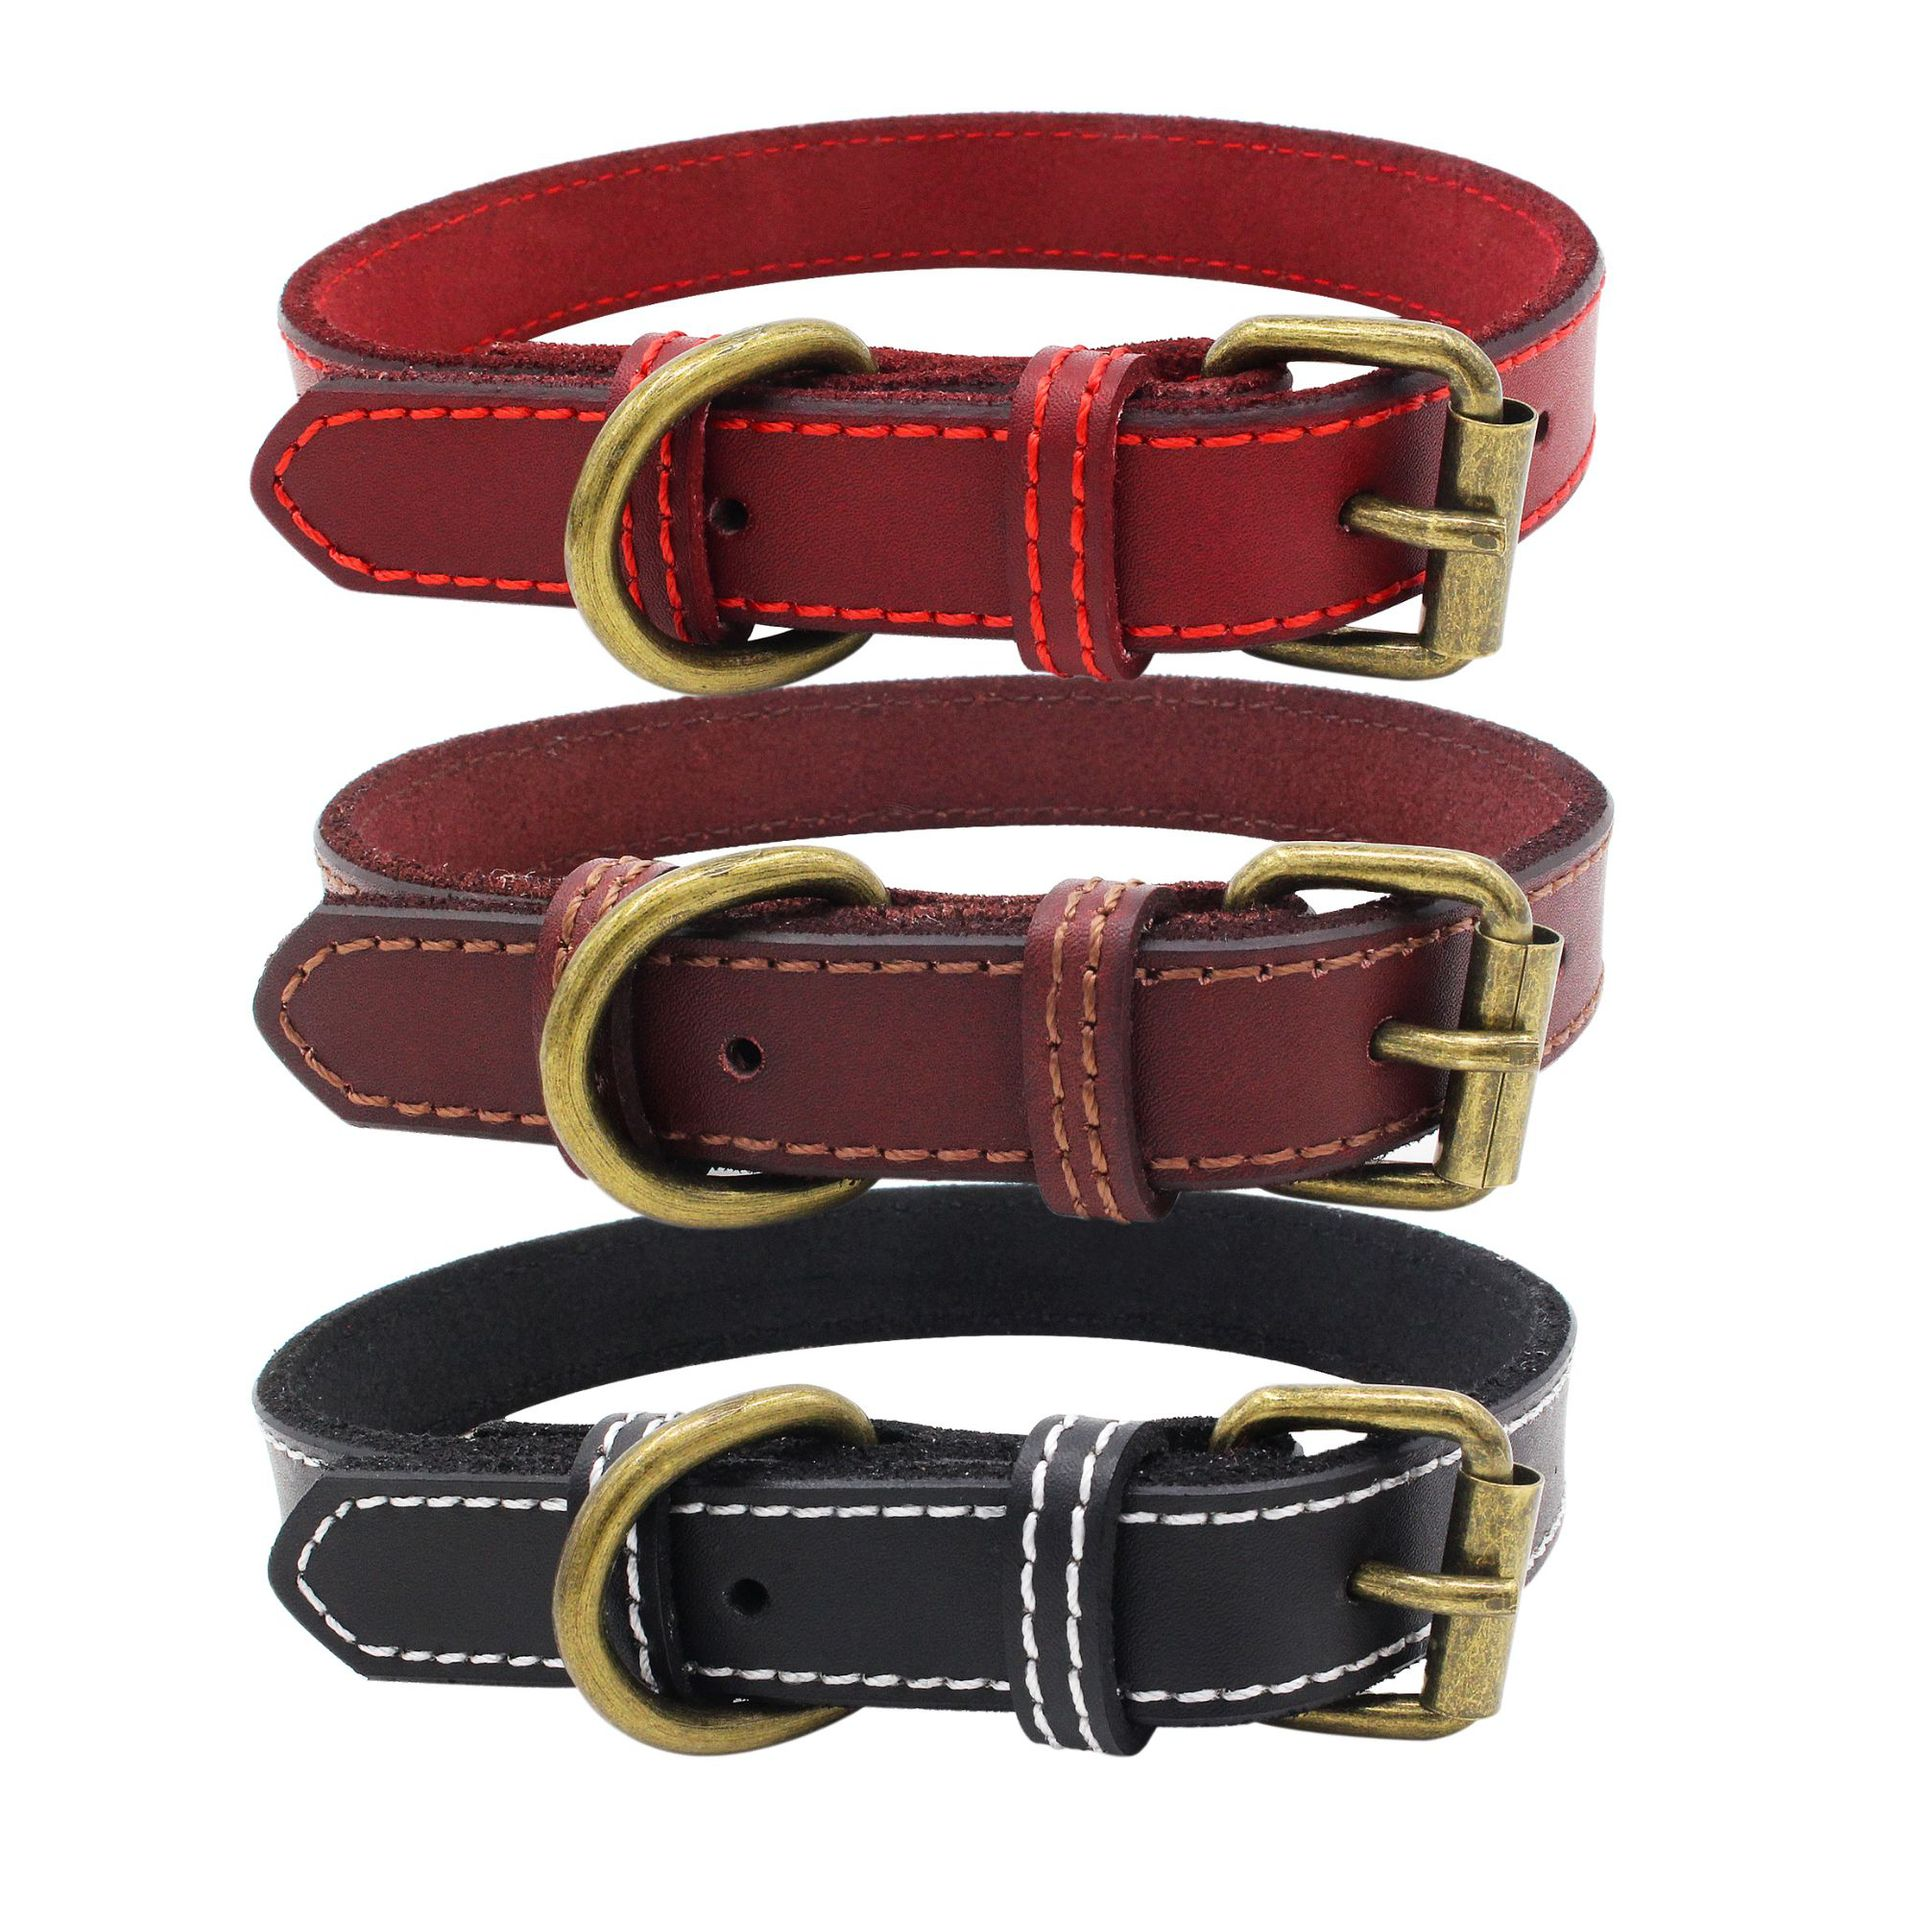 Pure Cowhide Bite-proof Protector Bronze Retro Pet Collar Natural Leather Dog Neck Ring Cow Leather Collar Manufacturers Current